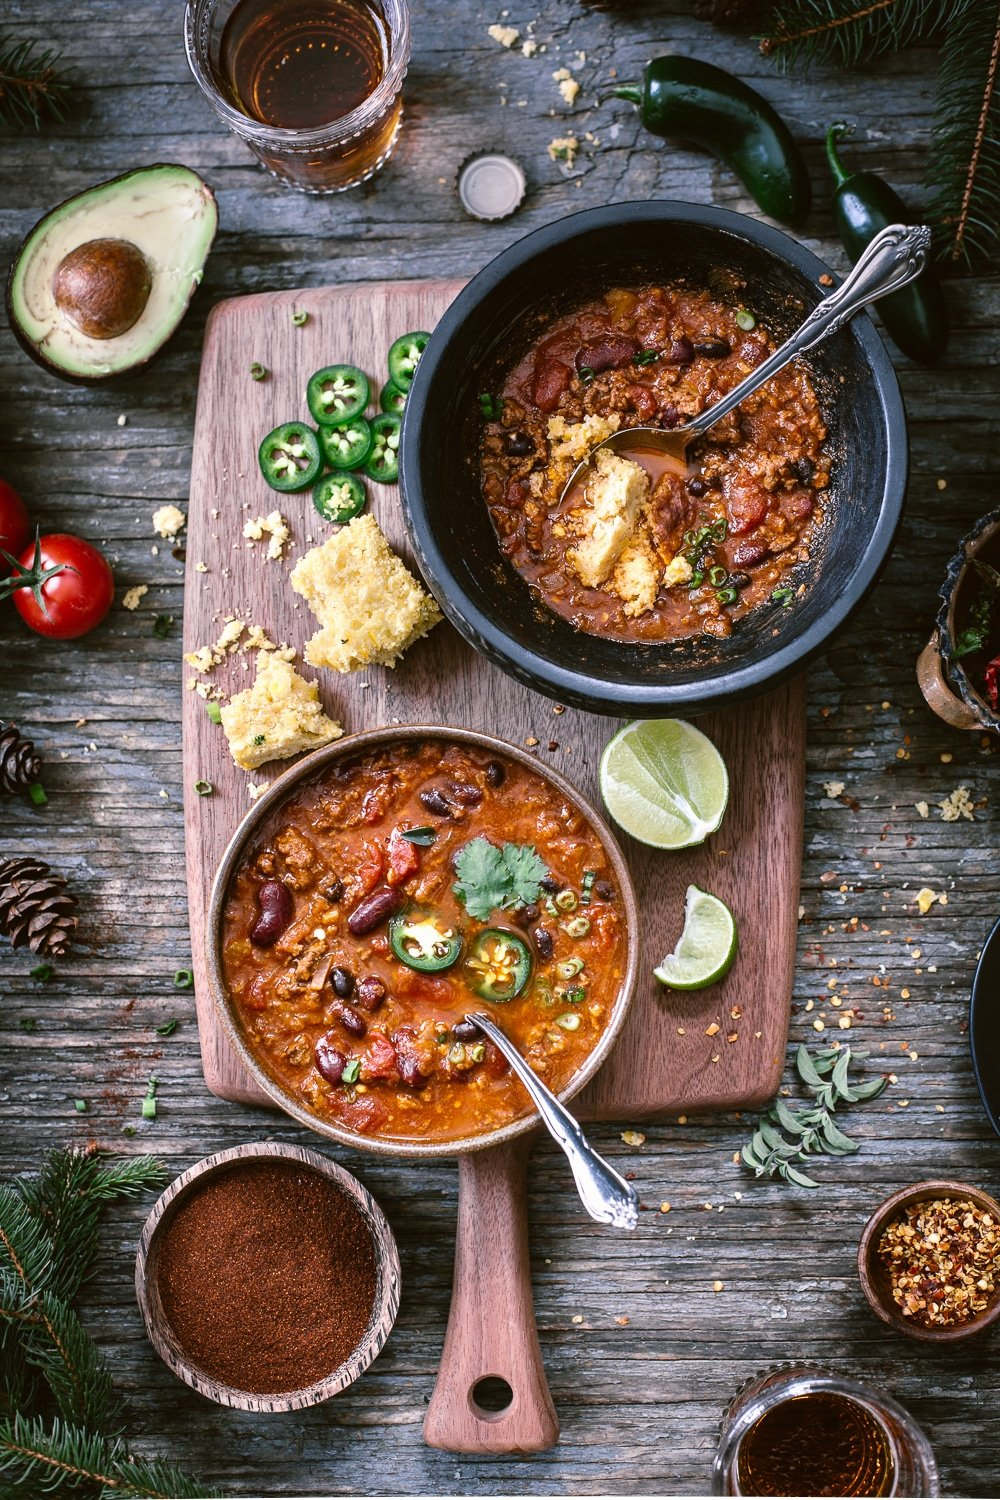 Healthyish Savory Recipes for the Game Day: 2 bowls of Heartwarming Turkey and Bean Chili photographed from the top view along with corn muffins, fresh lime, sliced jalapeno, and avocados.